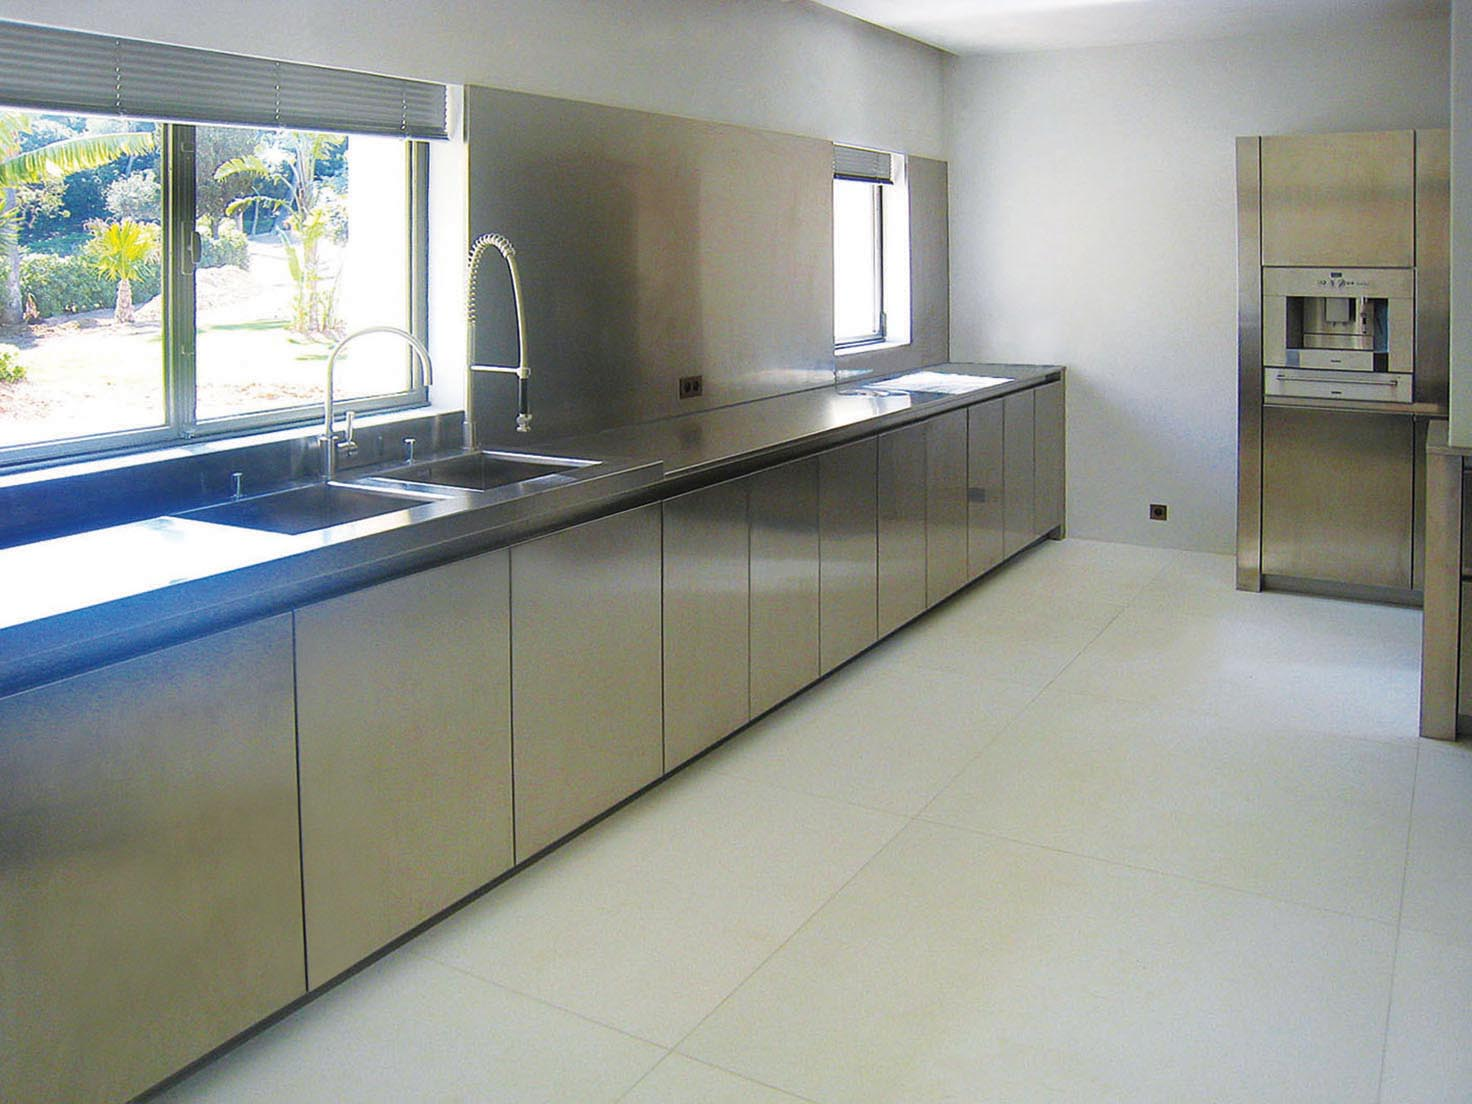 Exclusive professional kitchens for private residences